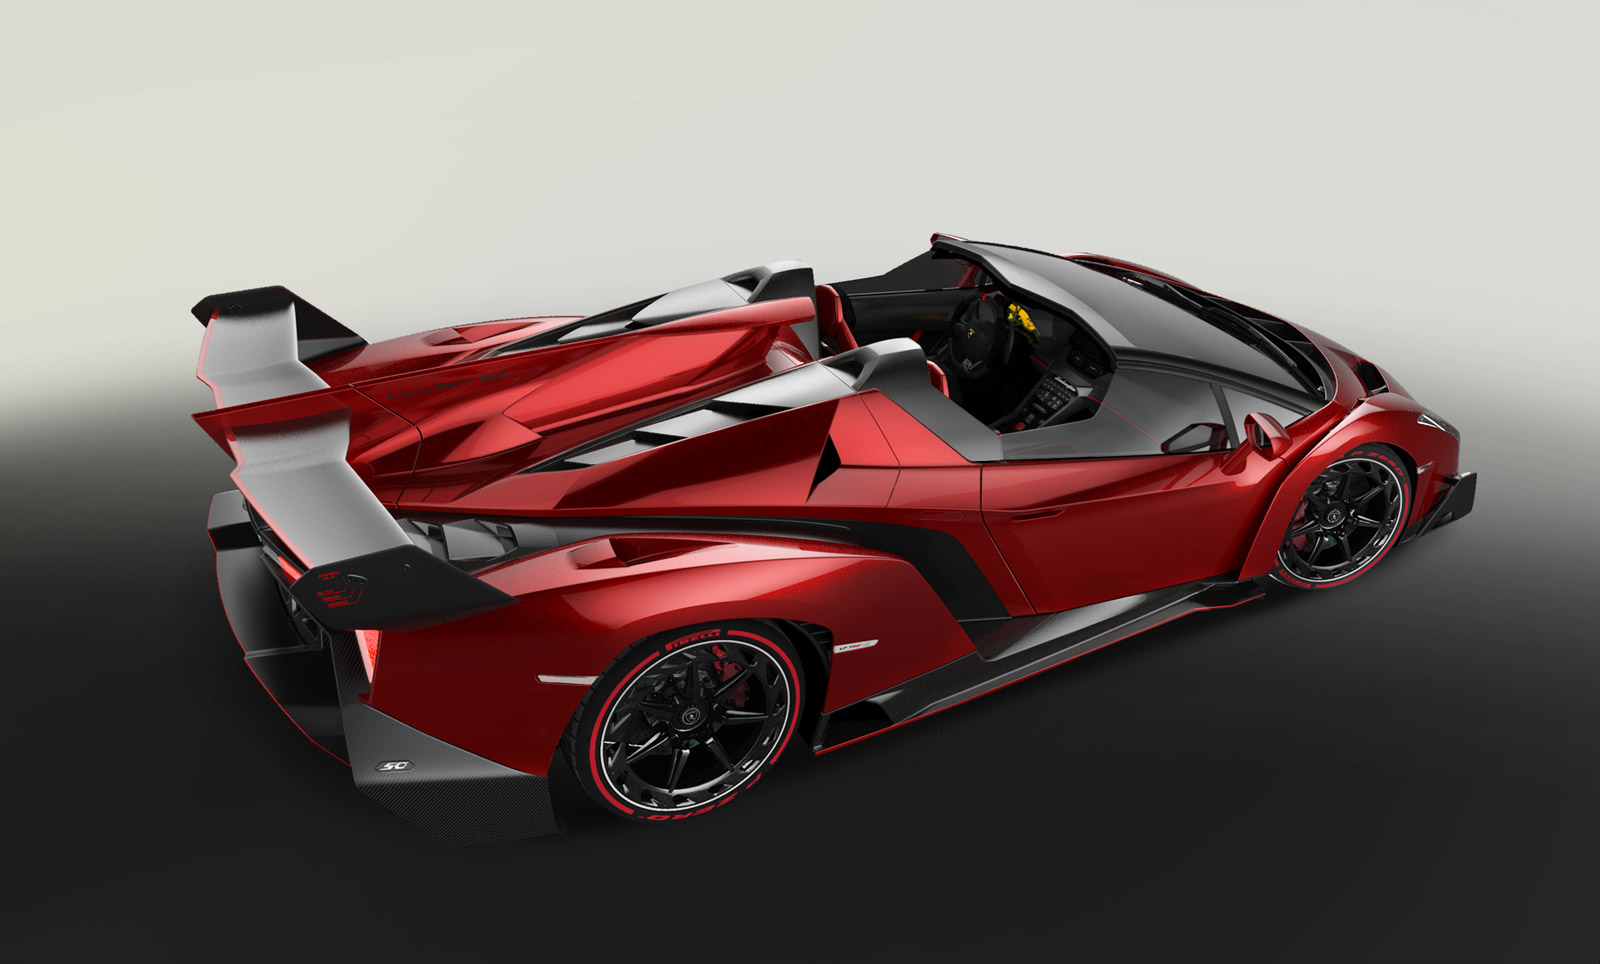 2019 Lamborghini Veneno photo - 6